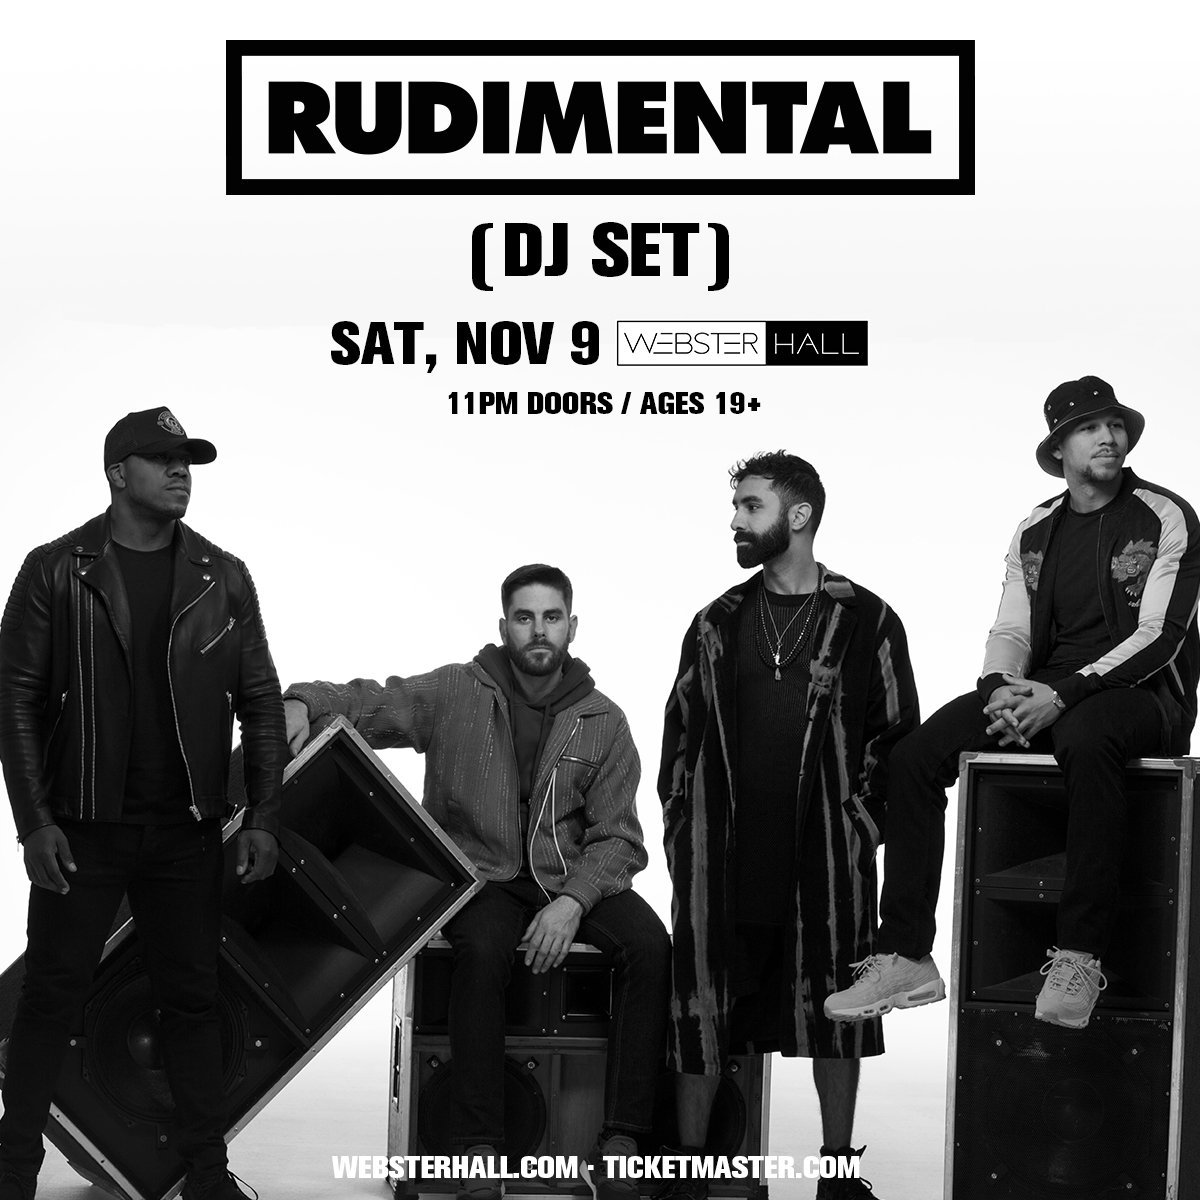 NYC!! We're coming back on November 9th for a DJ set at @WebsterHall  Tickets on sale Friday at 10am ET. More US shows to be announced soon  <br>http://pic.twitter.com/uBJBBfdjIa